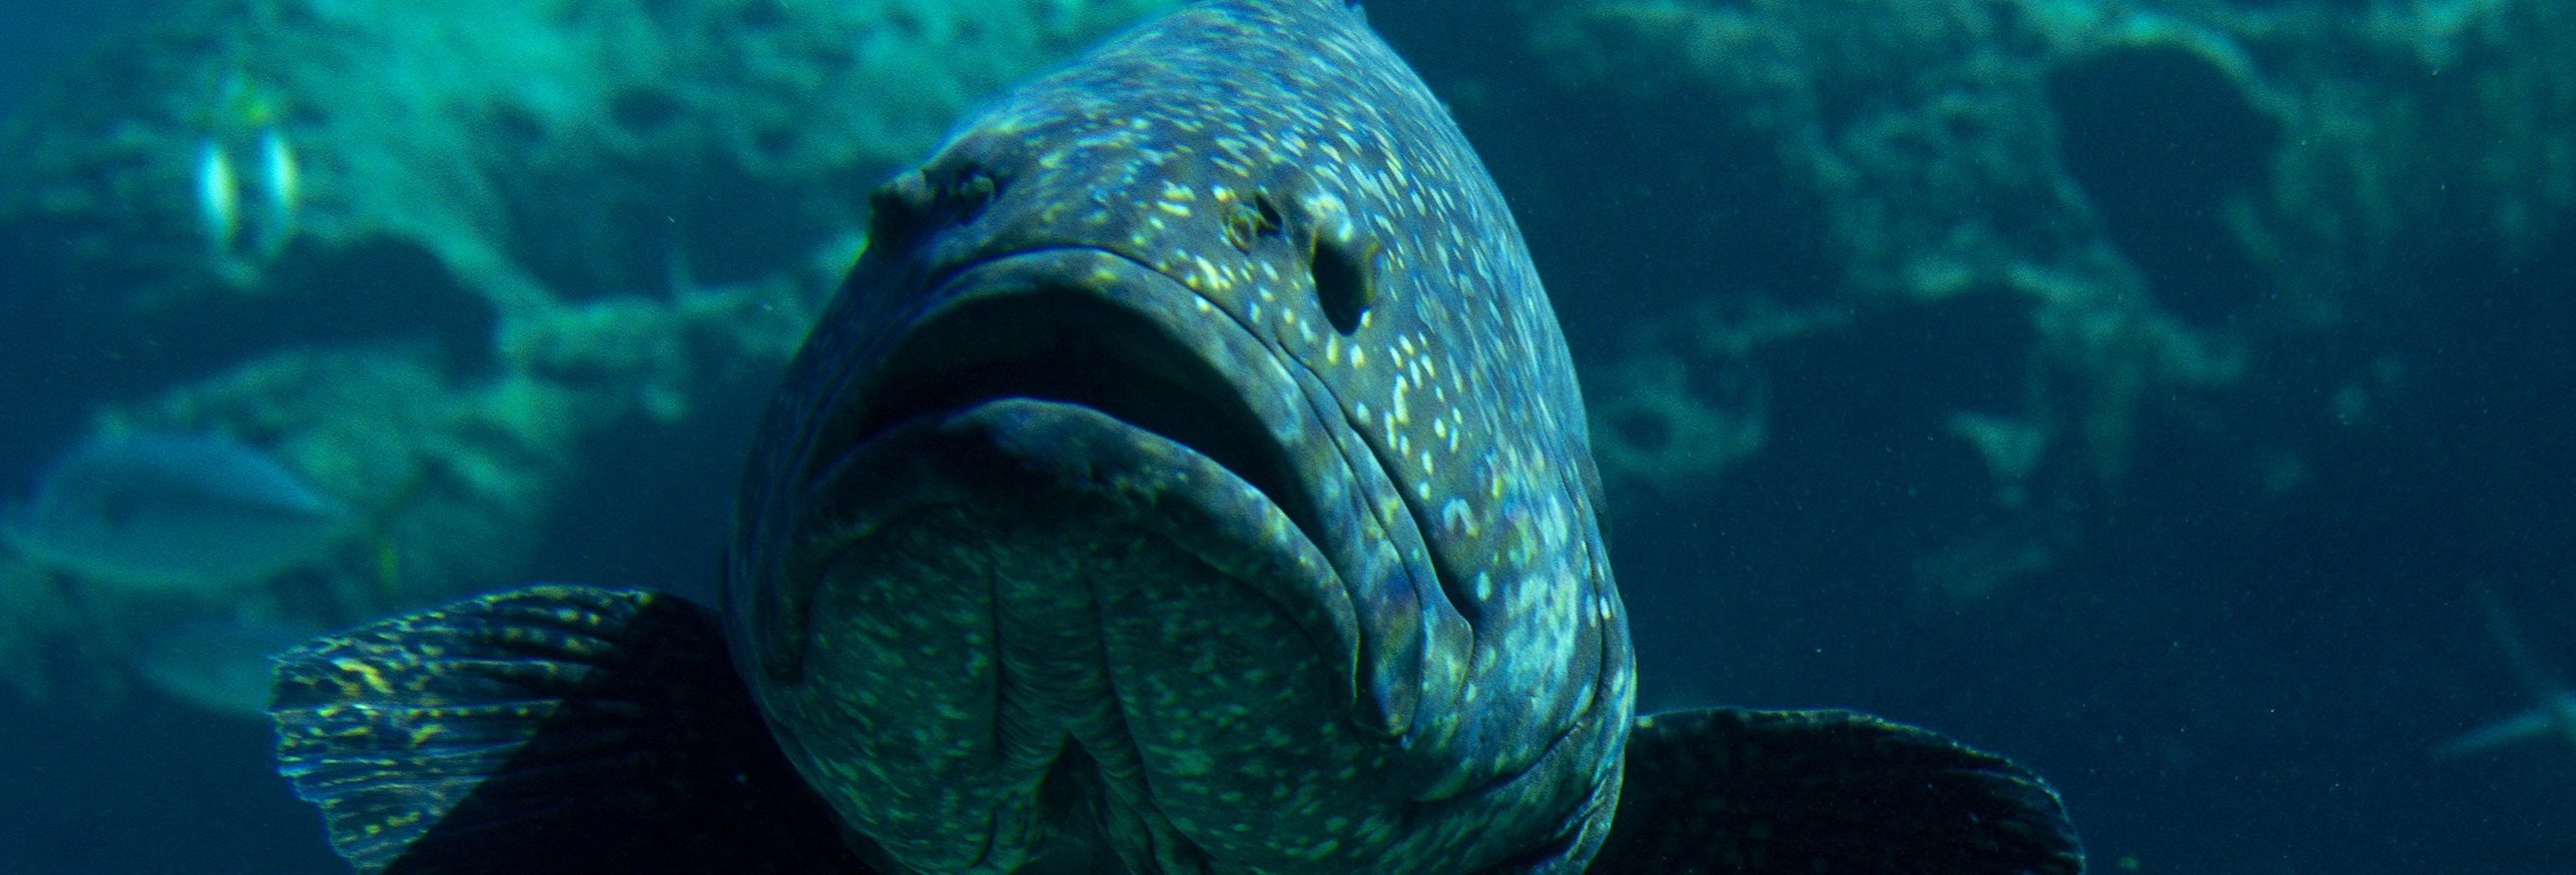 close up of black grouper fish